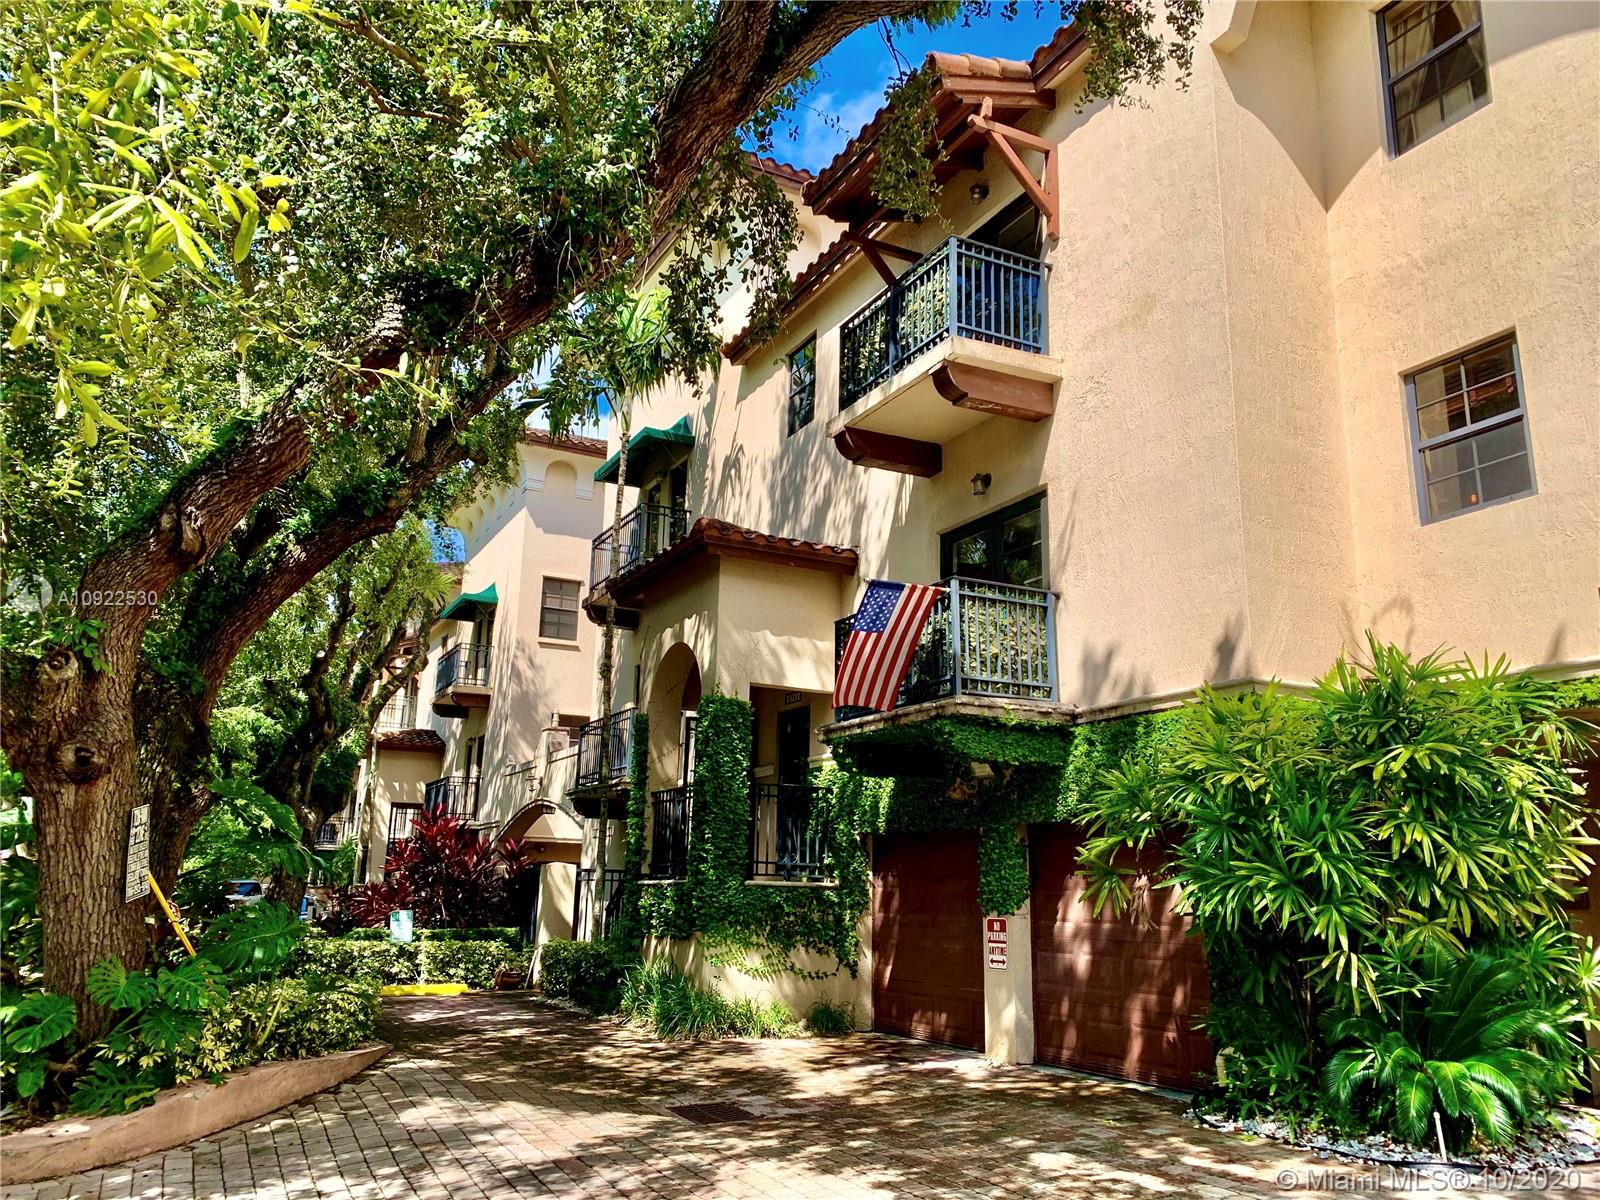 This immaculate, professionally decorated tri-level townhouse combines modern elegance and Mediterranean design. Unit features all impact glass, large 2 car garage, marble floors & spacious living area. Built in 2005, Villagio In The Grove is nestled in one of the Grove's most beautiful tree lined streets. Complex features exercise room, rooftop pool and chic courtyard. Enjoy true Grove living - walking distance to famous shops, restaurants & galleries. Pets ok, easy to show.